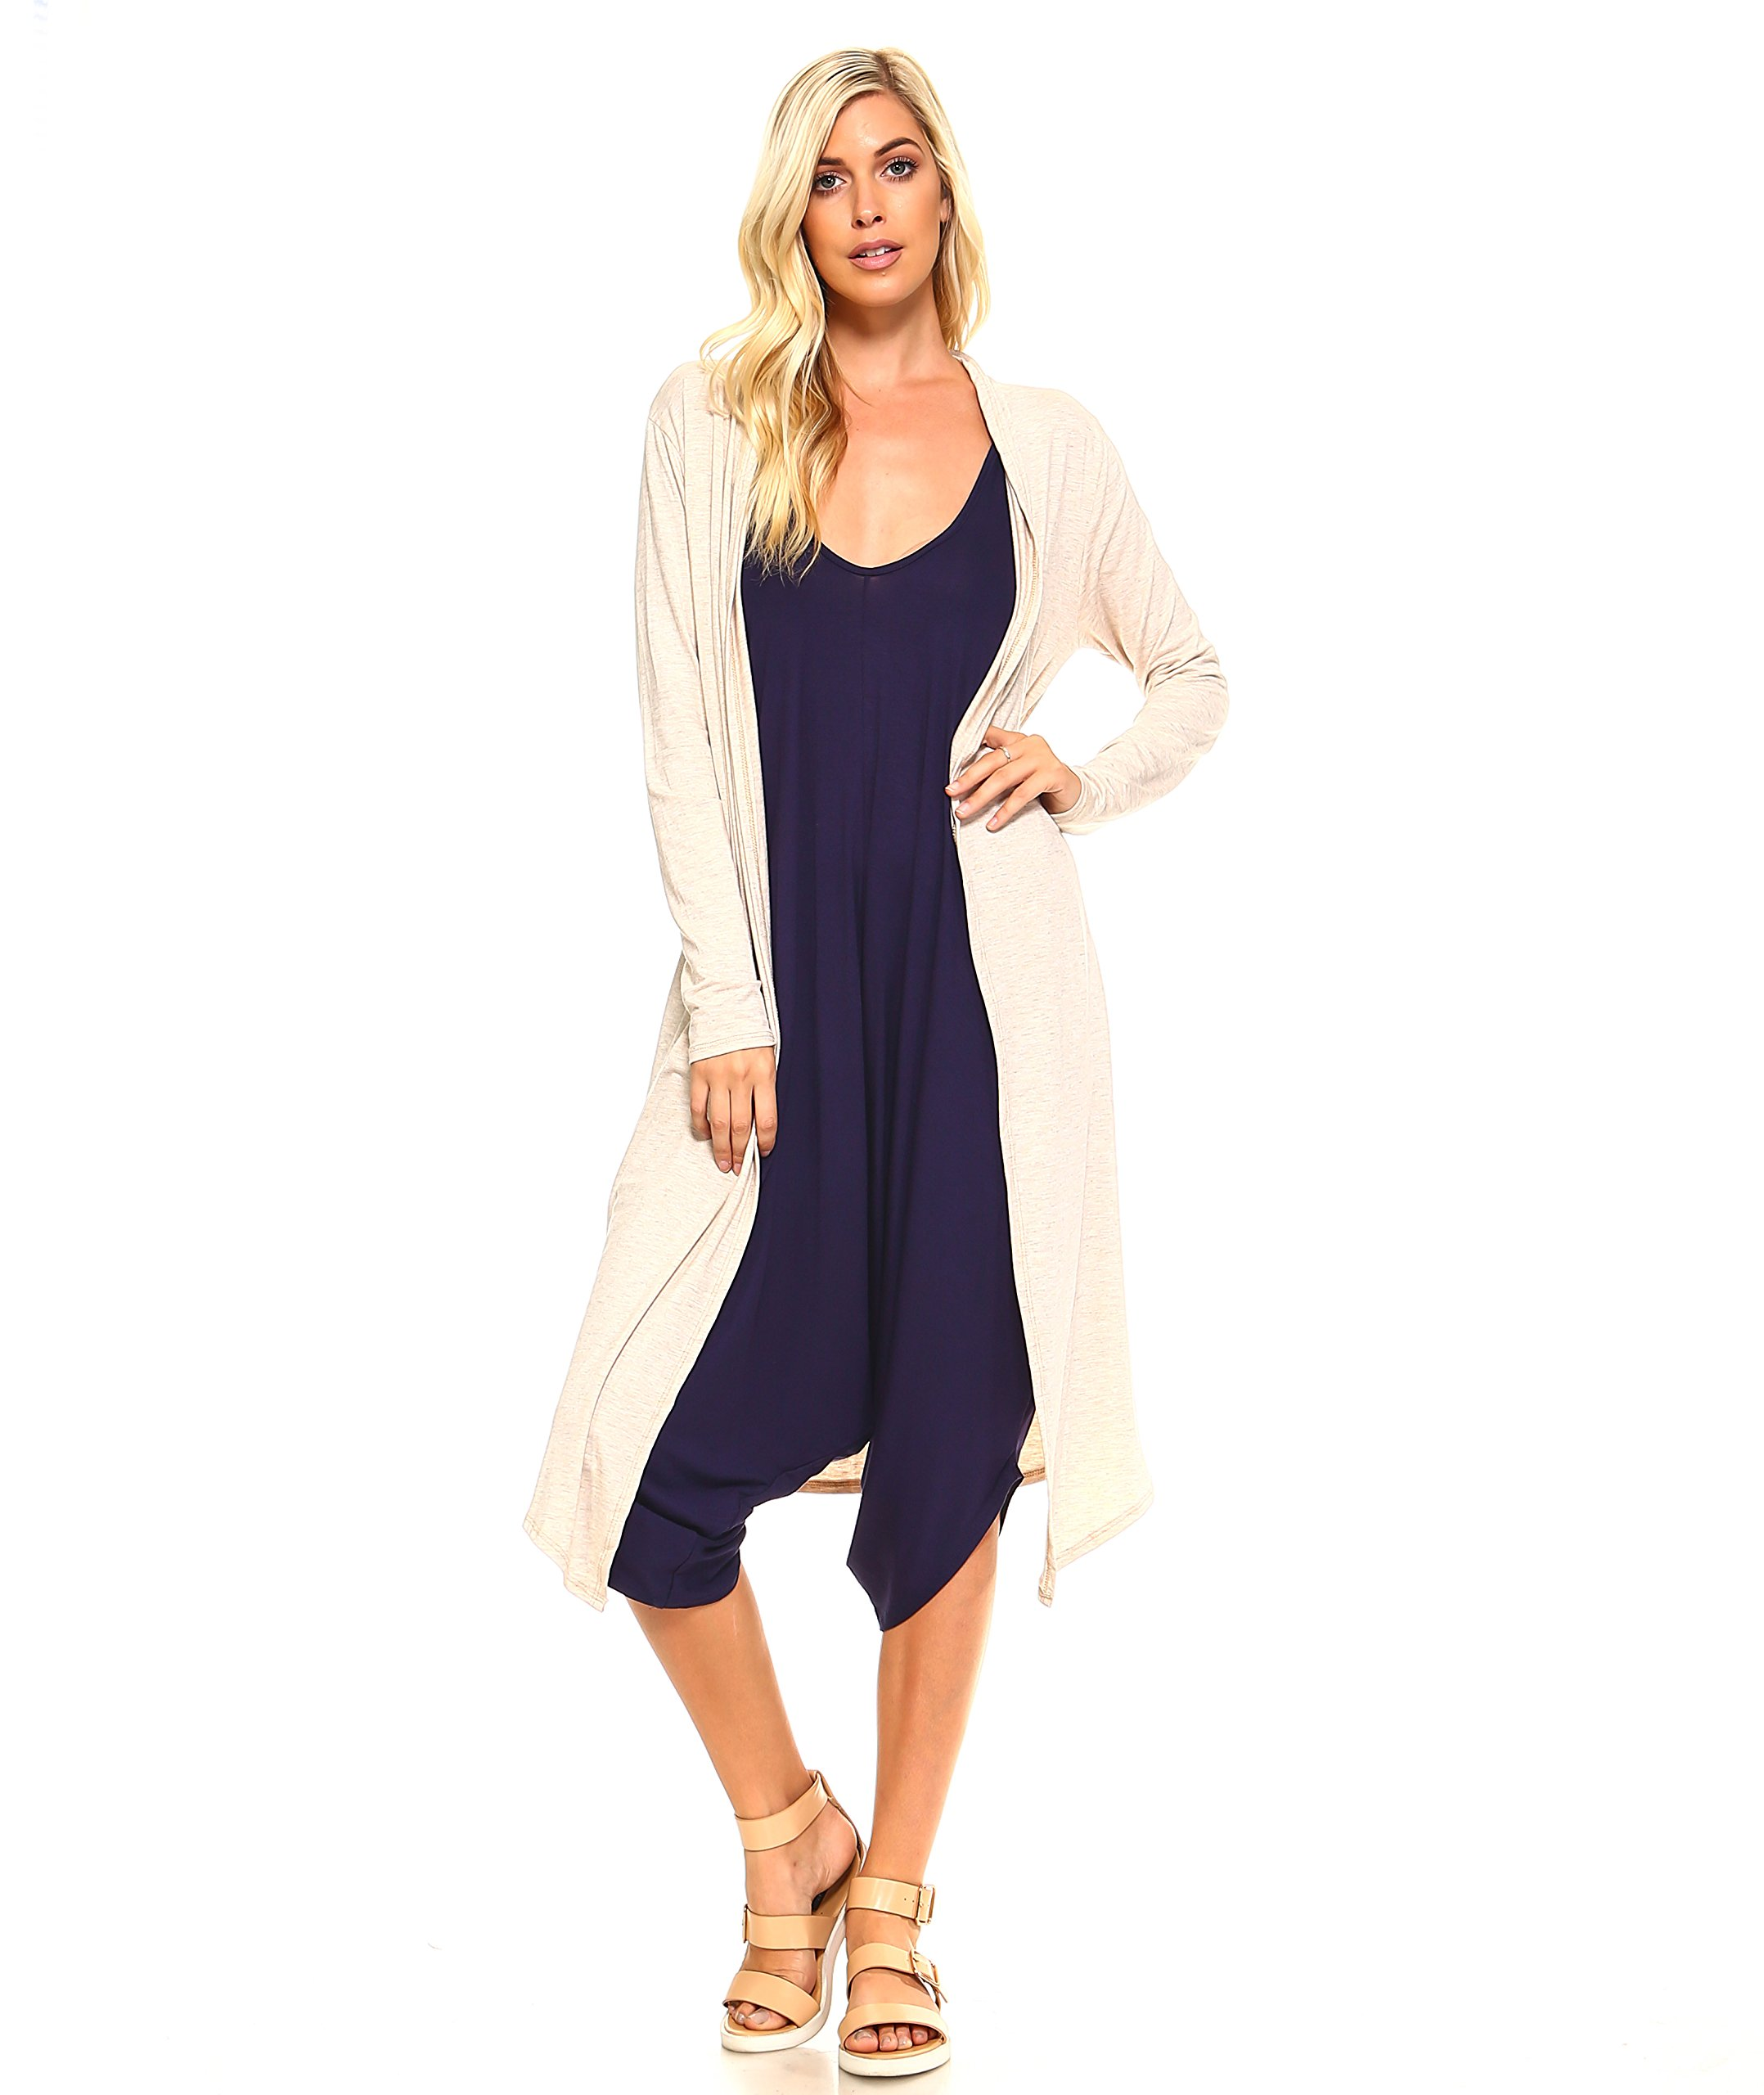 Isaac Liev Trendy Extra Long Duster Soft Cardigan (X-Large, Oatmeal)